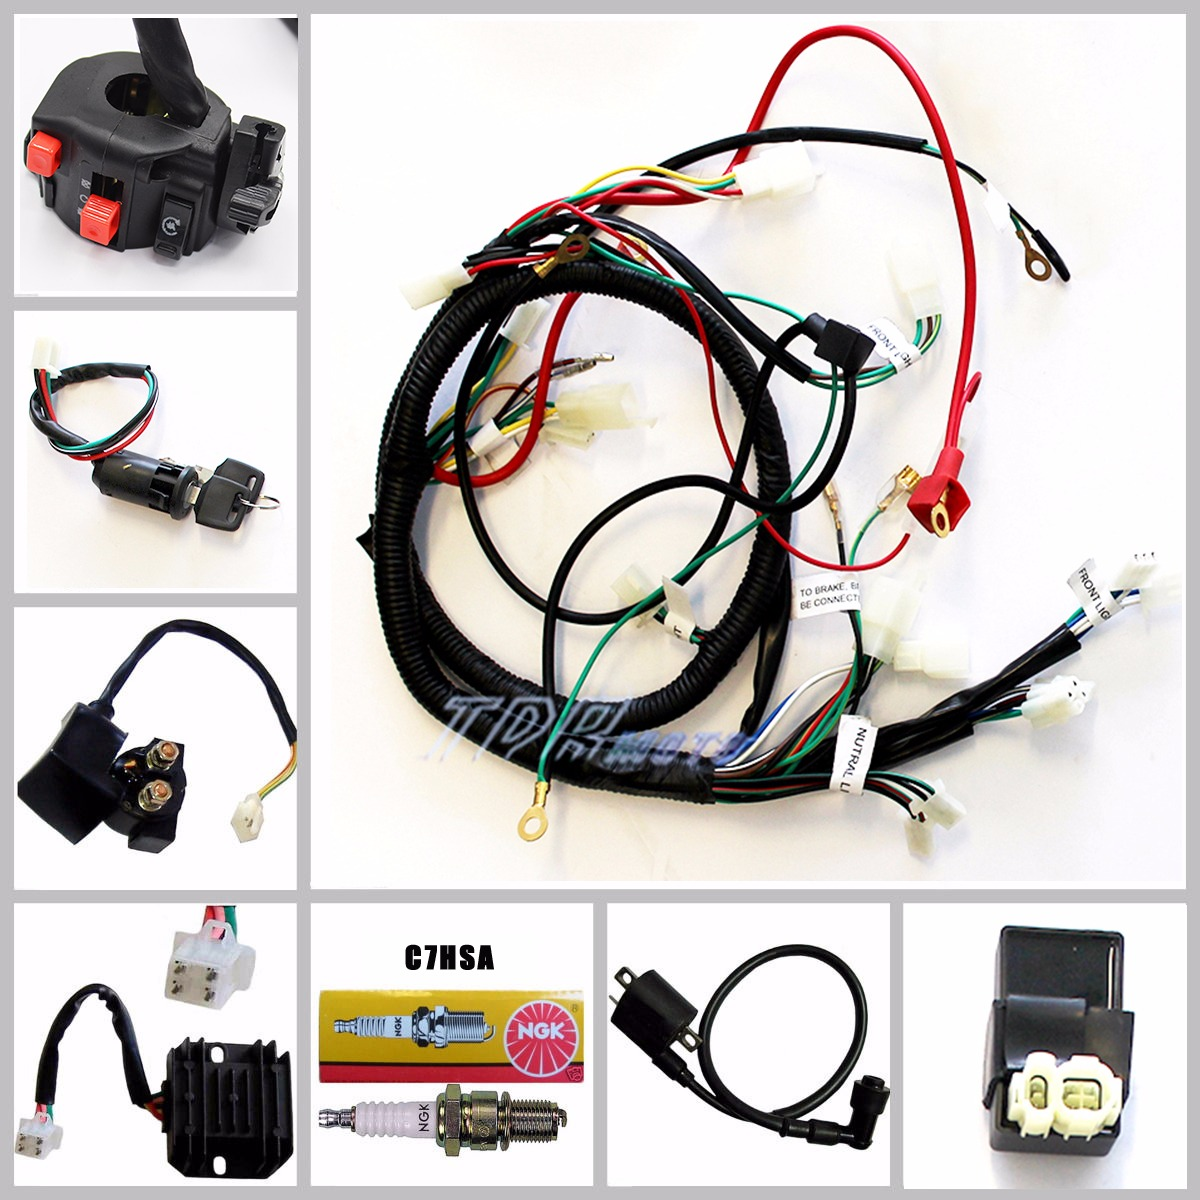 TD356 tdr_(2) buggy wiring harness loom gy6 150cc chinese electric start kandi gy6 go kart wiring harness at gsmx.co